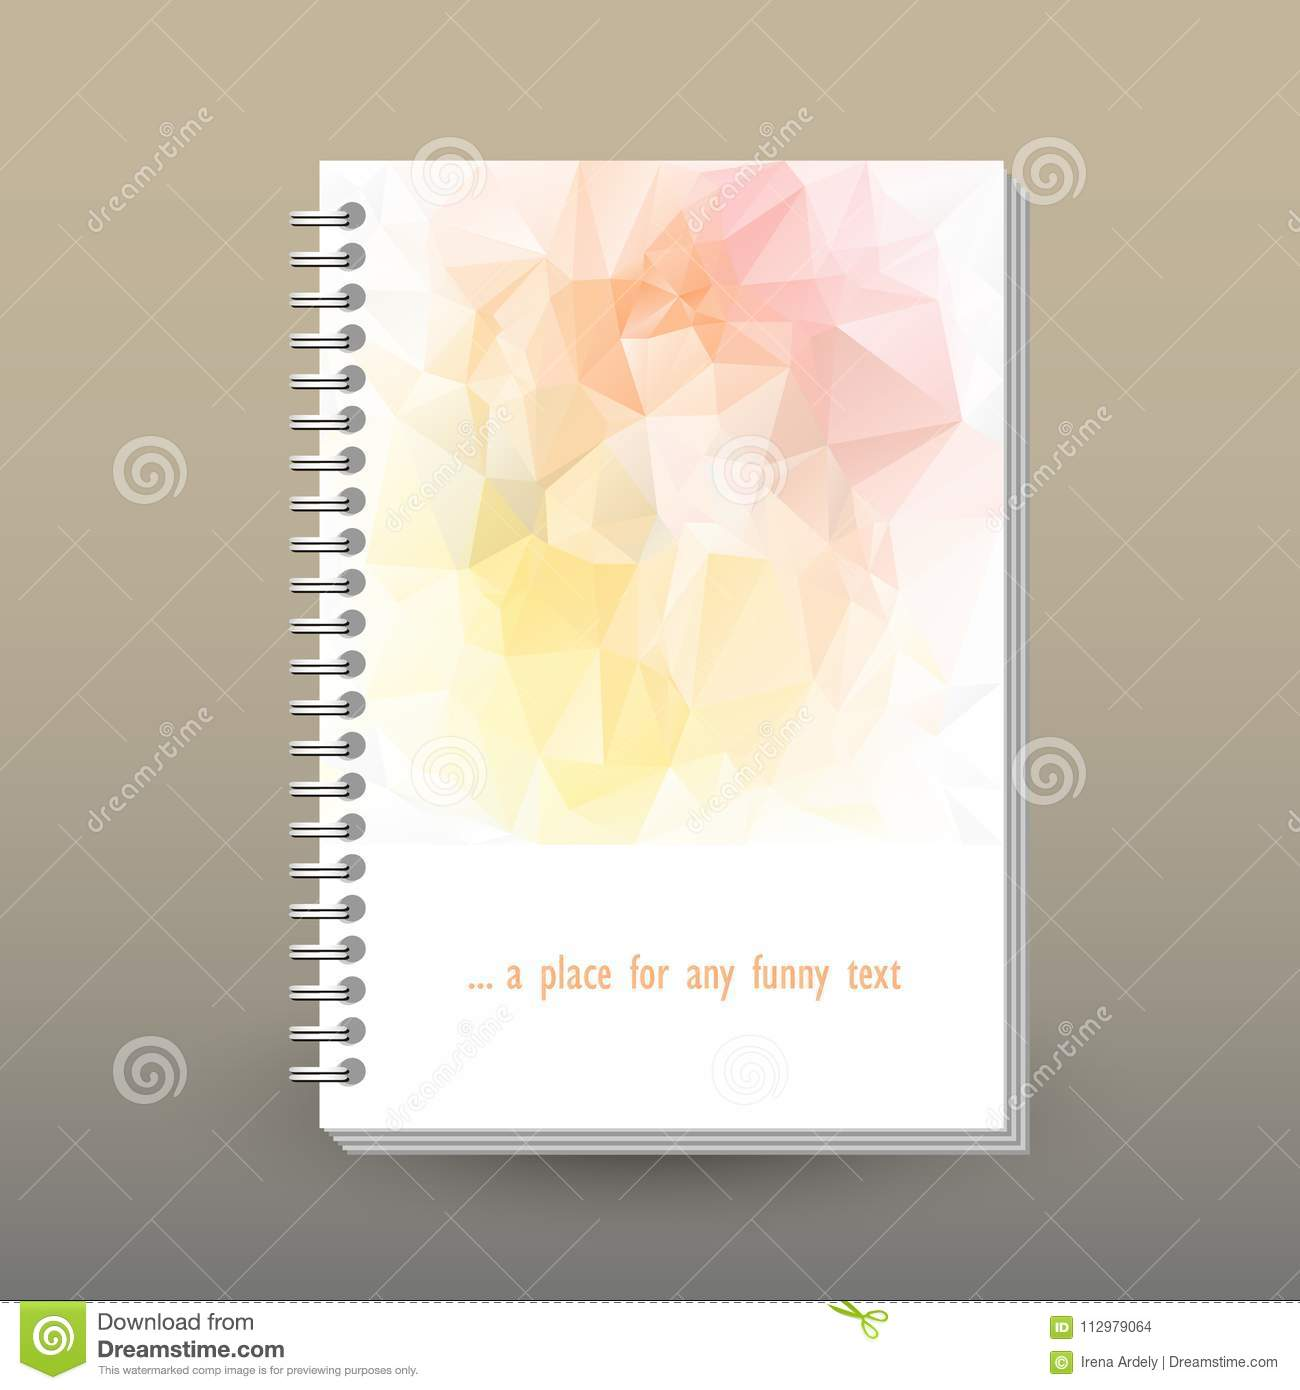 Vector cover of diary with ring spiral binder - format A5 - layout brochure concept - light pink, peach, soft yellow c